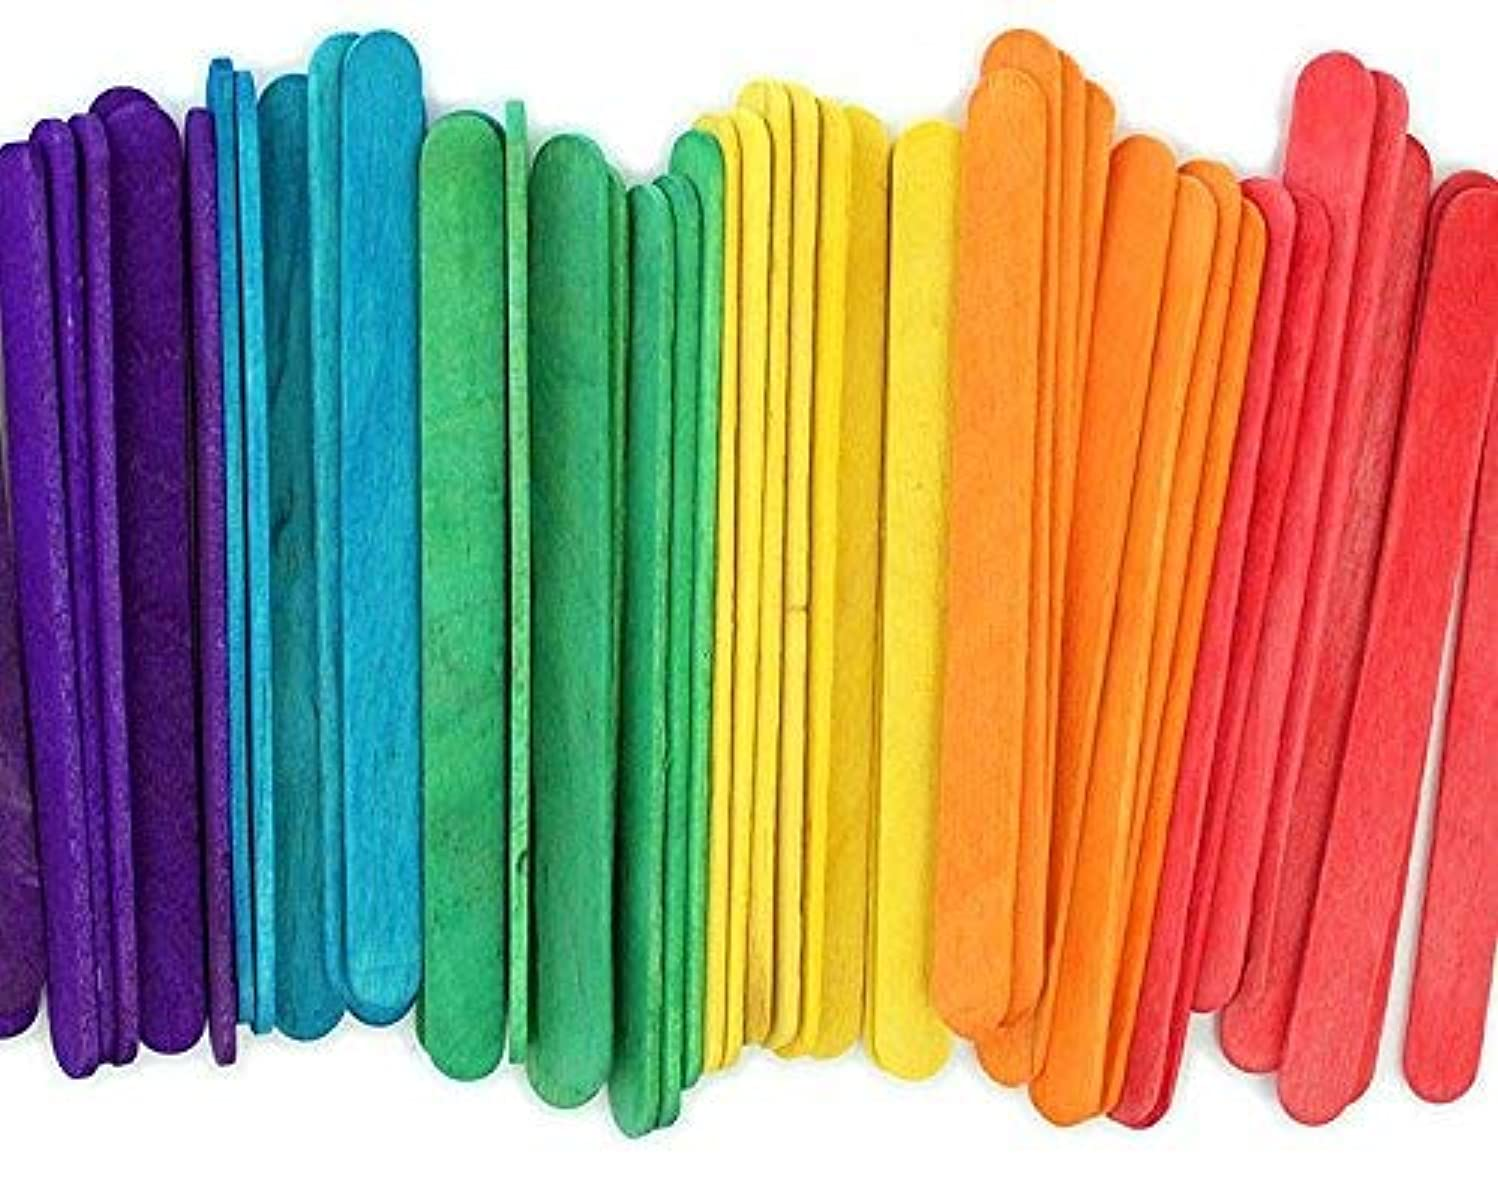 Weansy's Store Popsicle Wooden Craft Sticks, Colored Stick, 4-1/2-Inch - Pack of 50 - Ideal for Crafters, Teachers, and Students